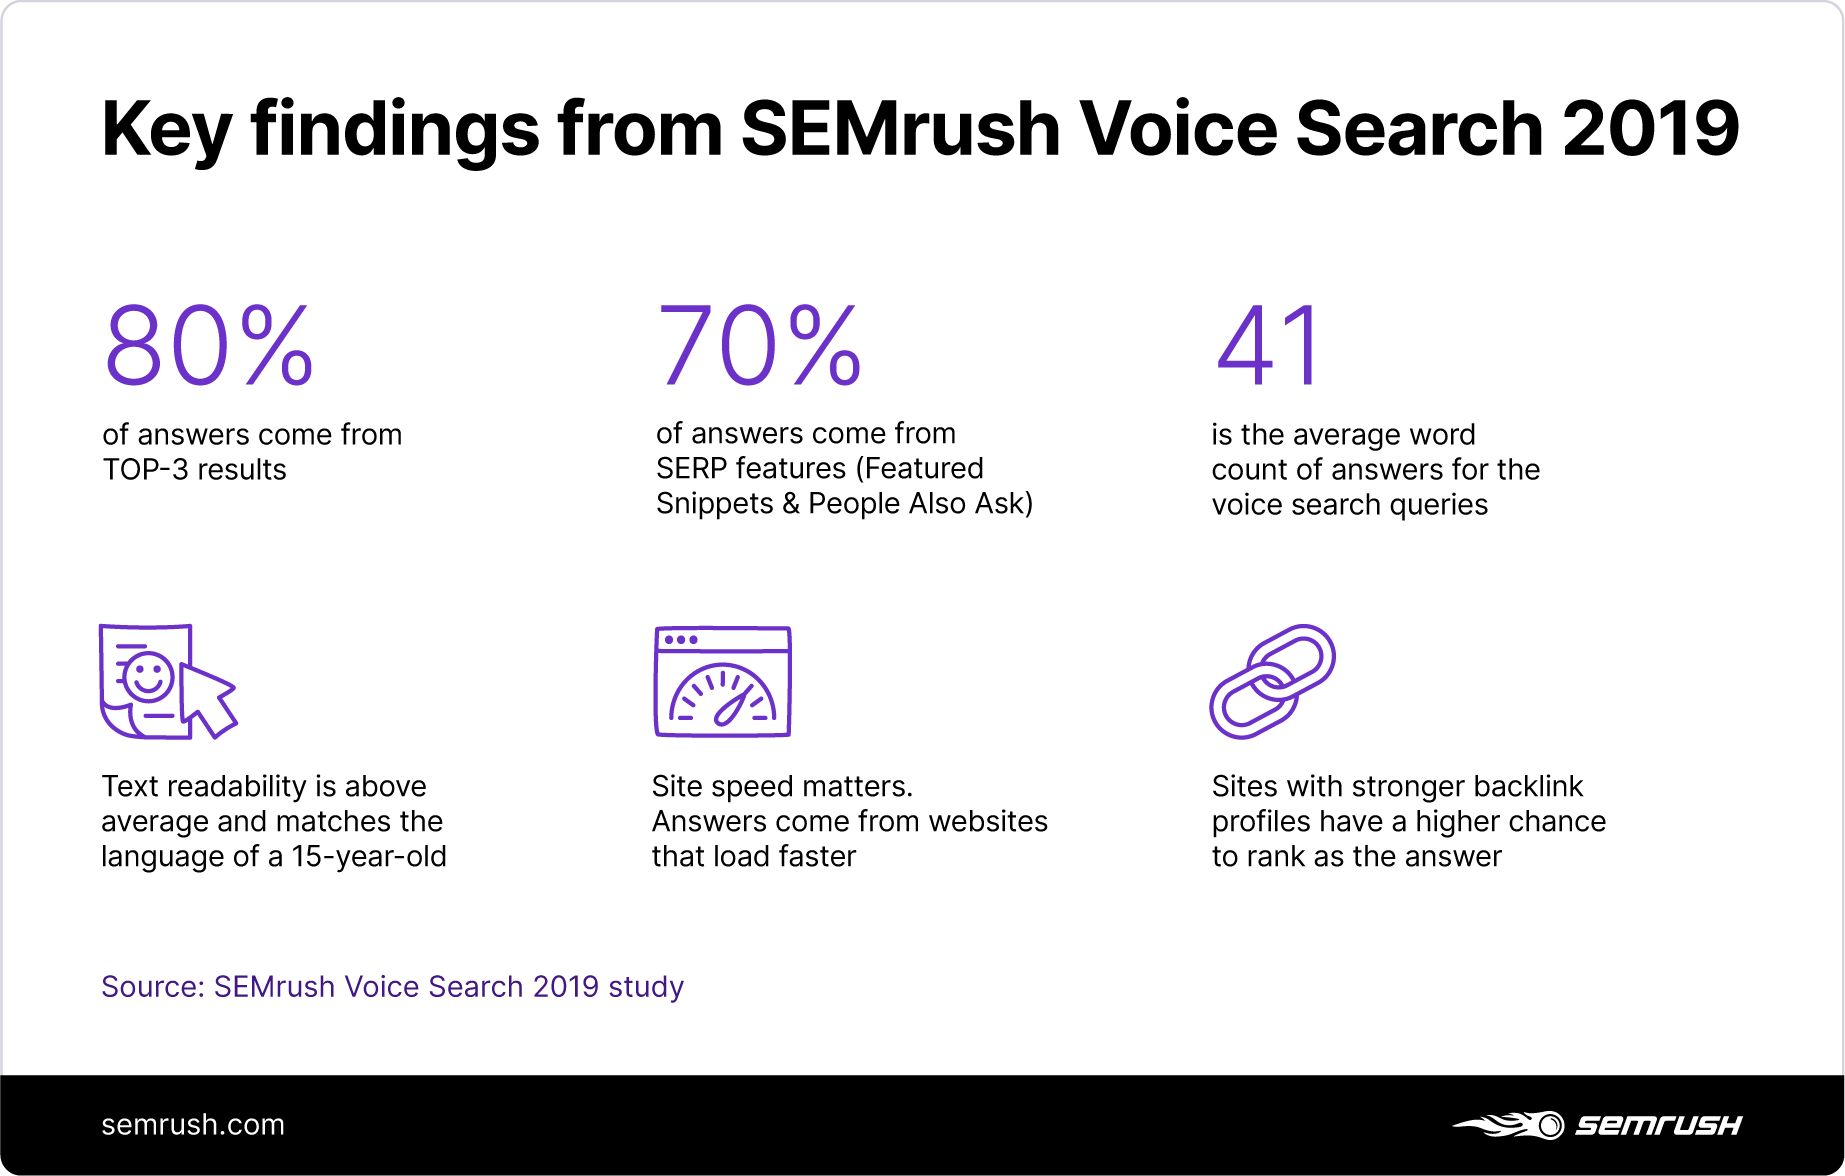 Key findings from SEMrush Voice Search 2019 study